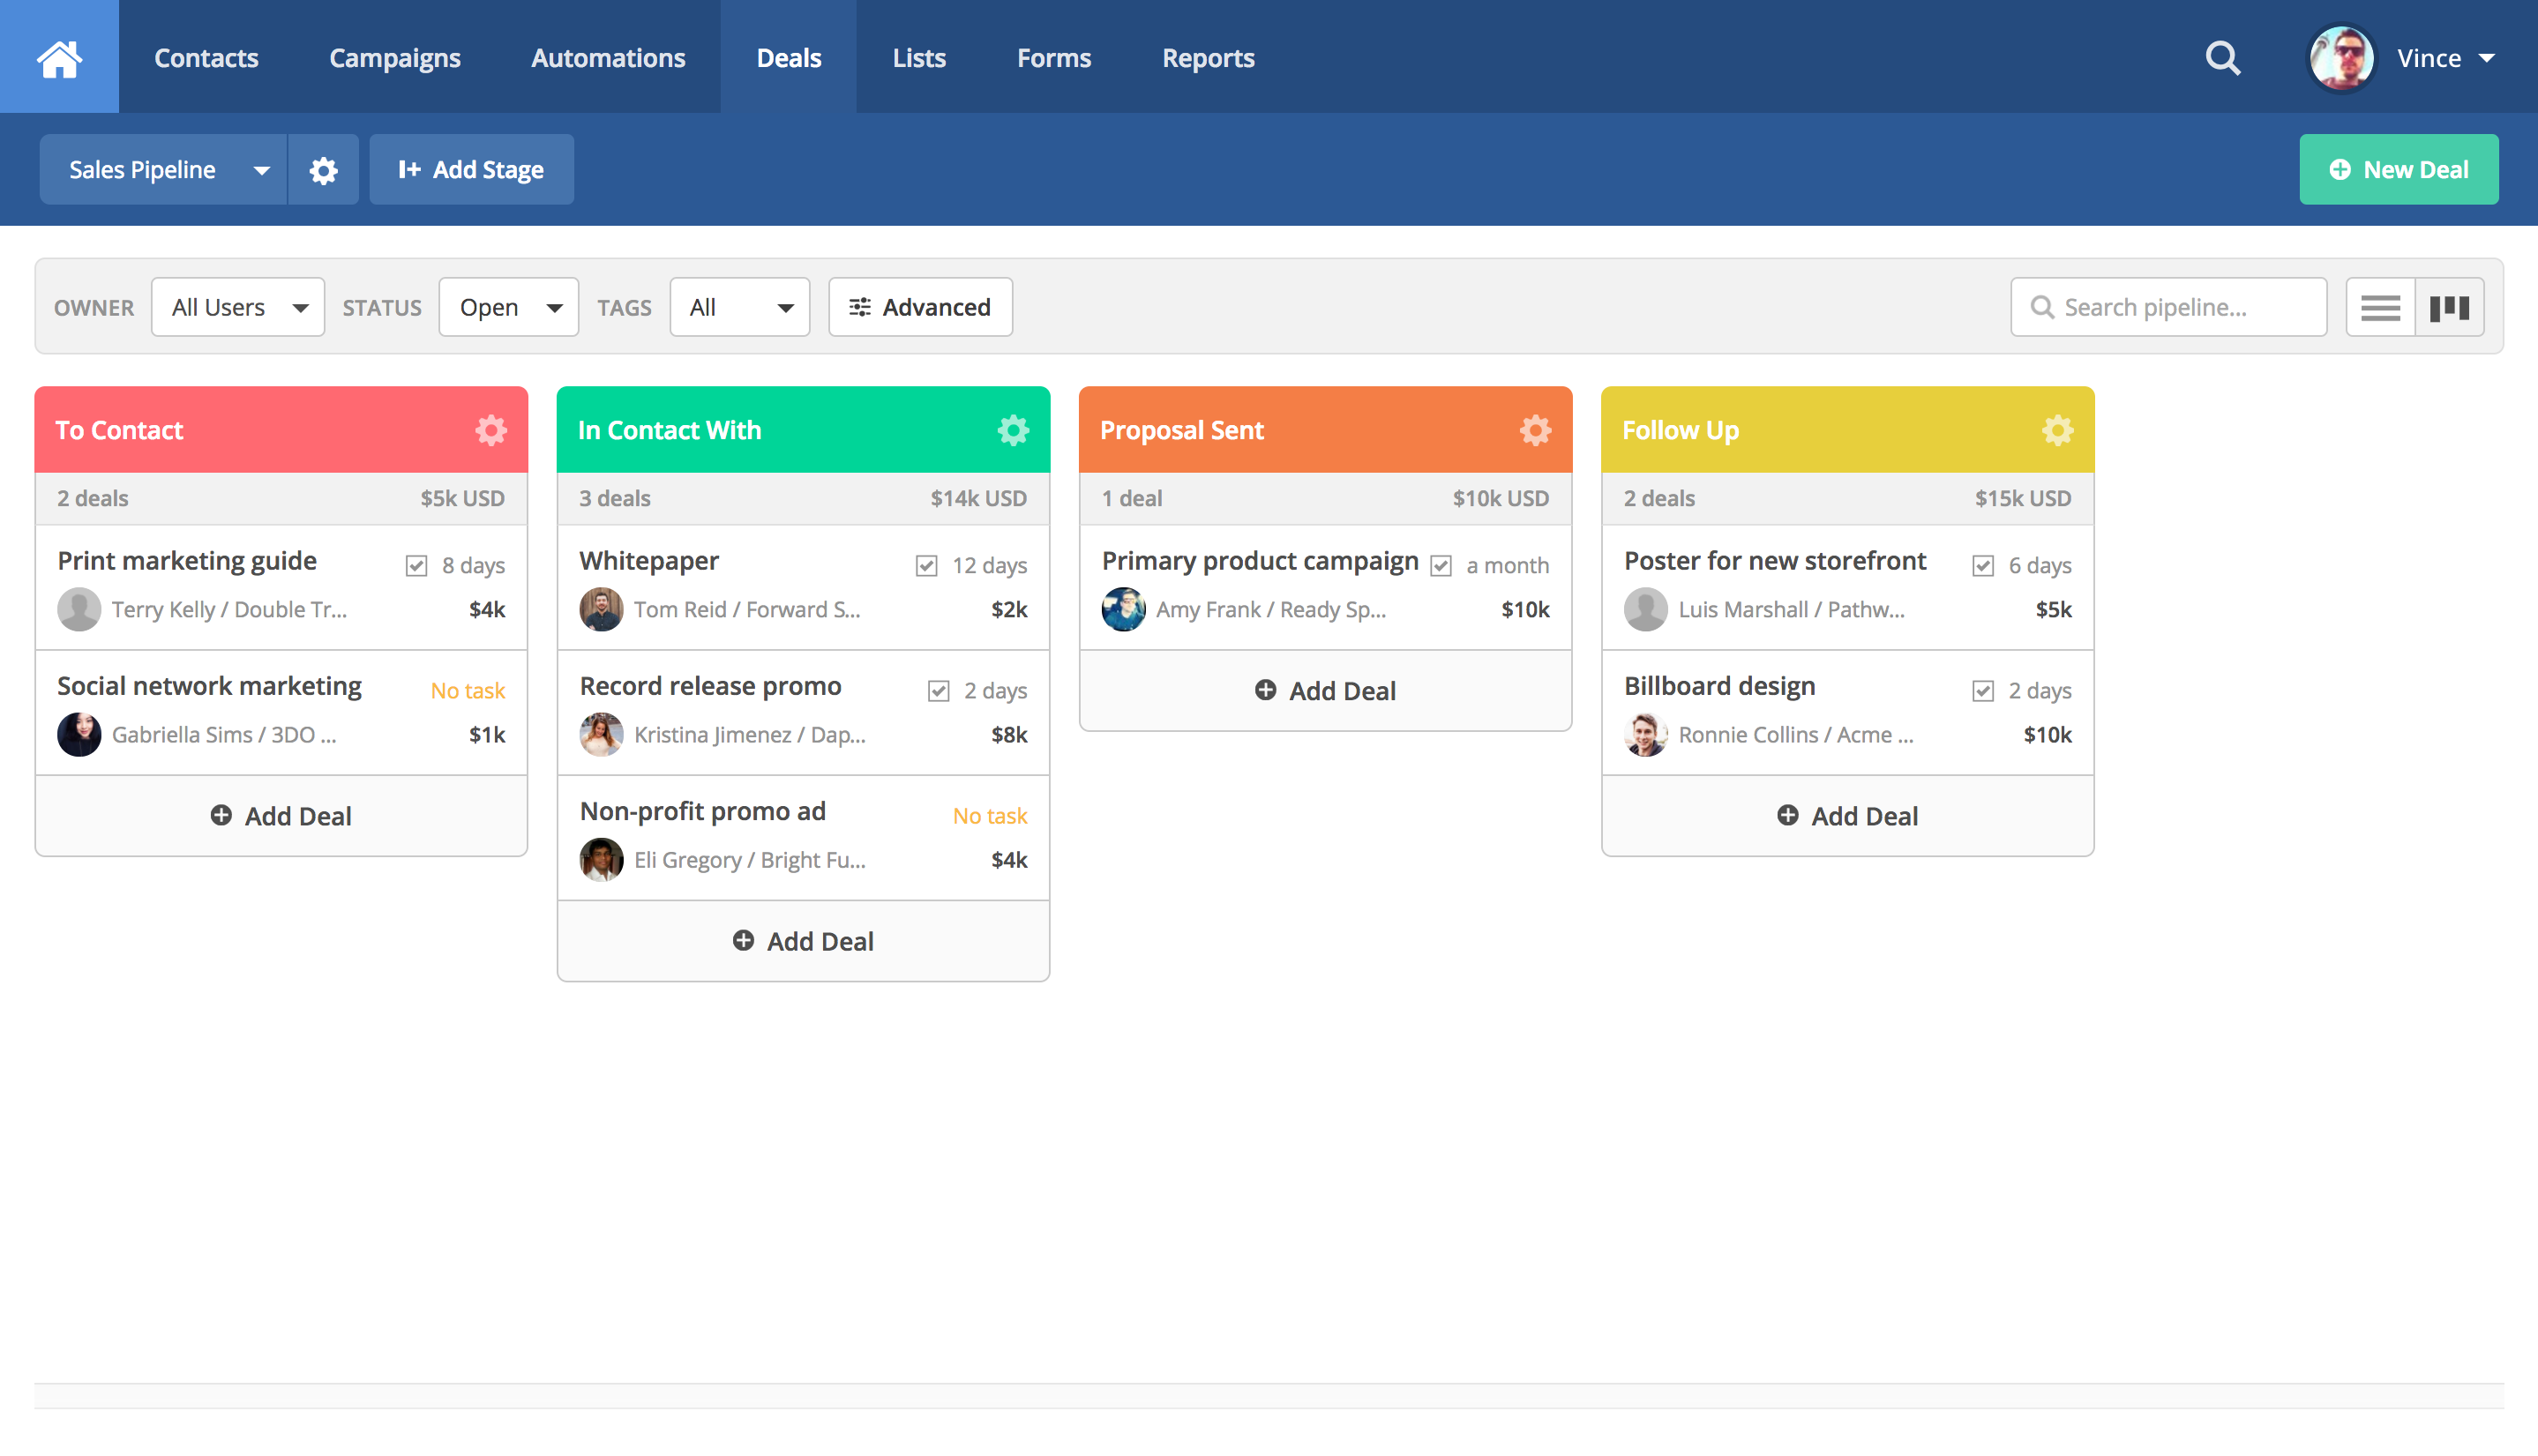 Pipeline view of the sales CRM